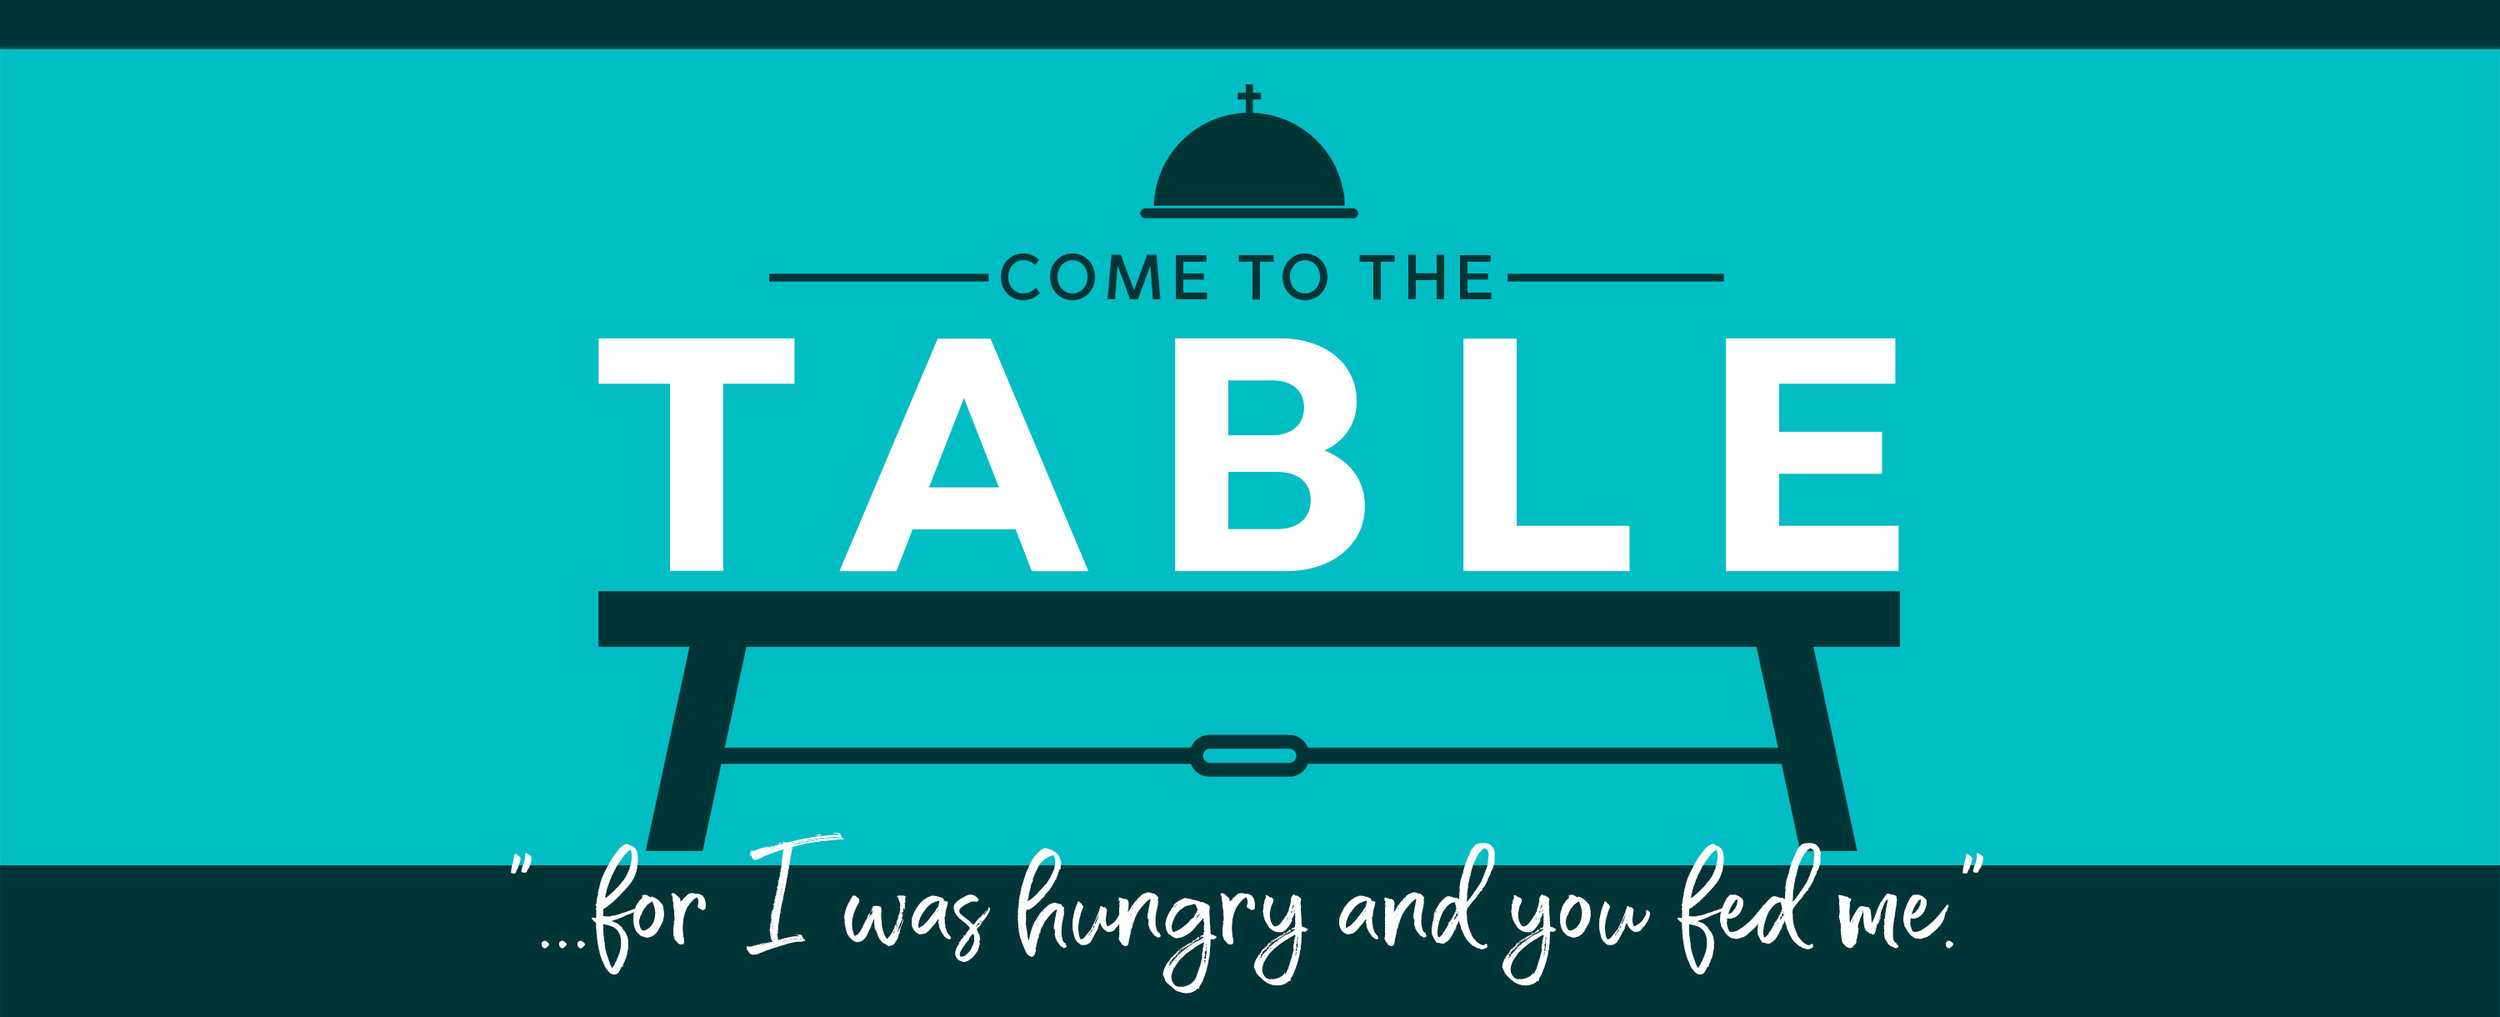 COME TO THE TABLE HEADER IMAGE.jpg